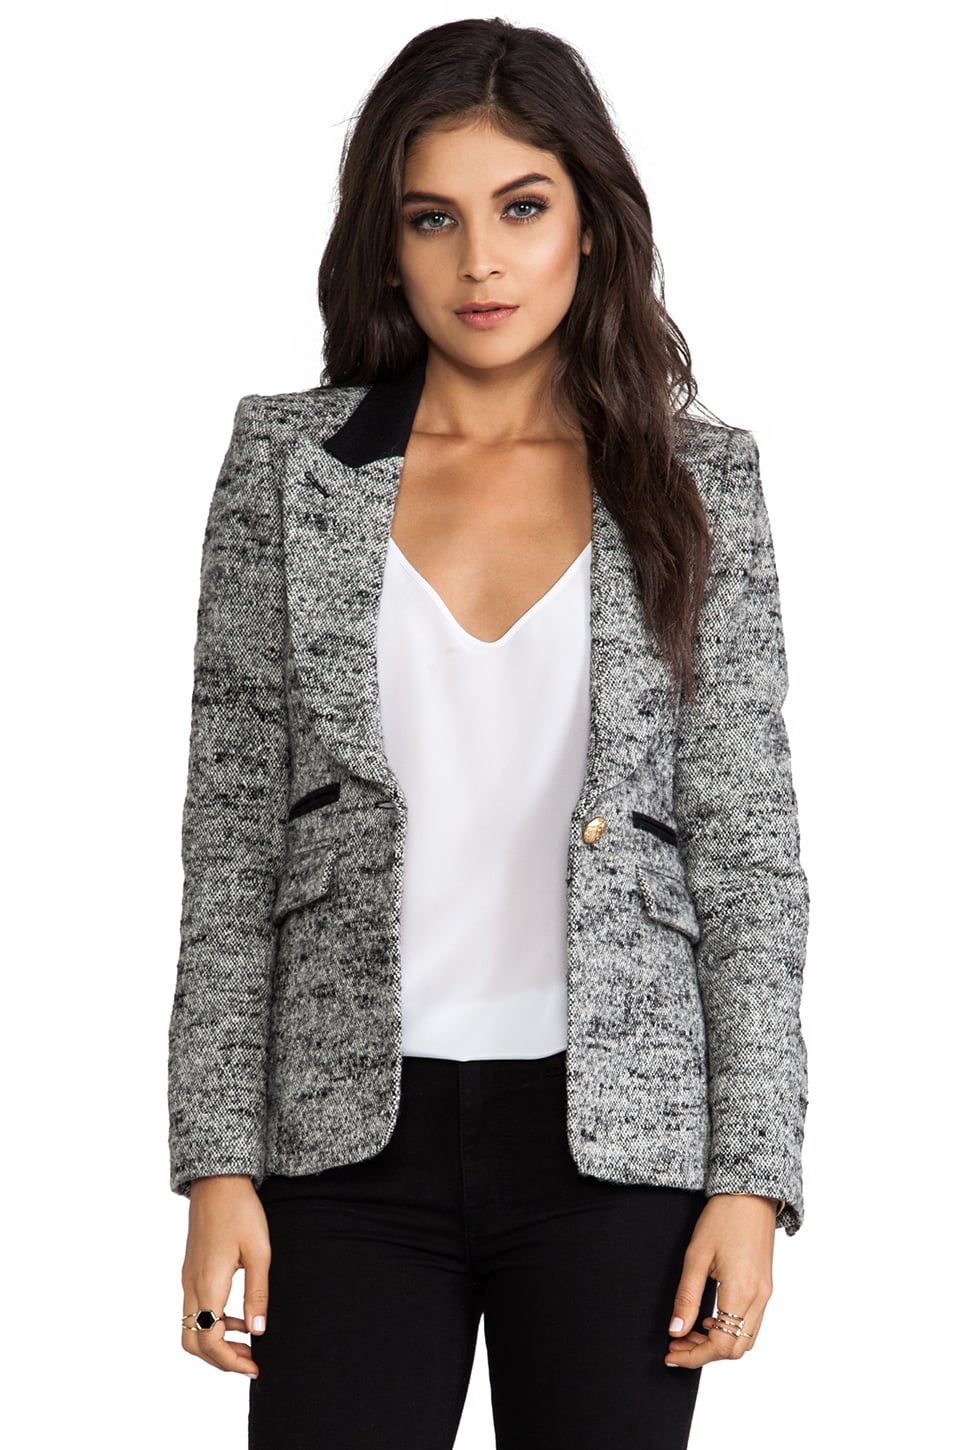 Smythe Peaked Lapel Blazer in Salt/Pepper Tweed